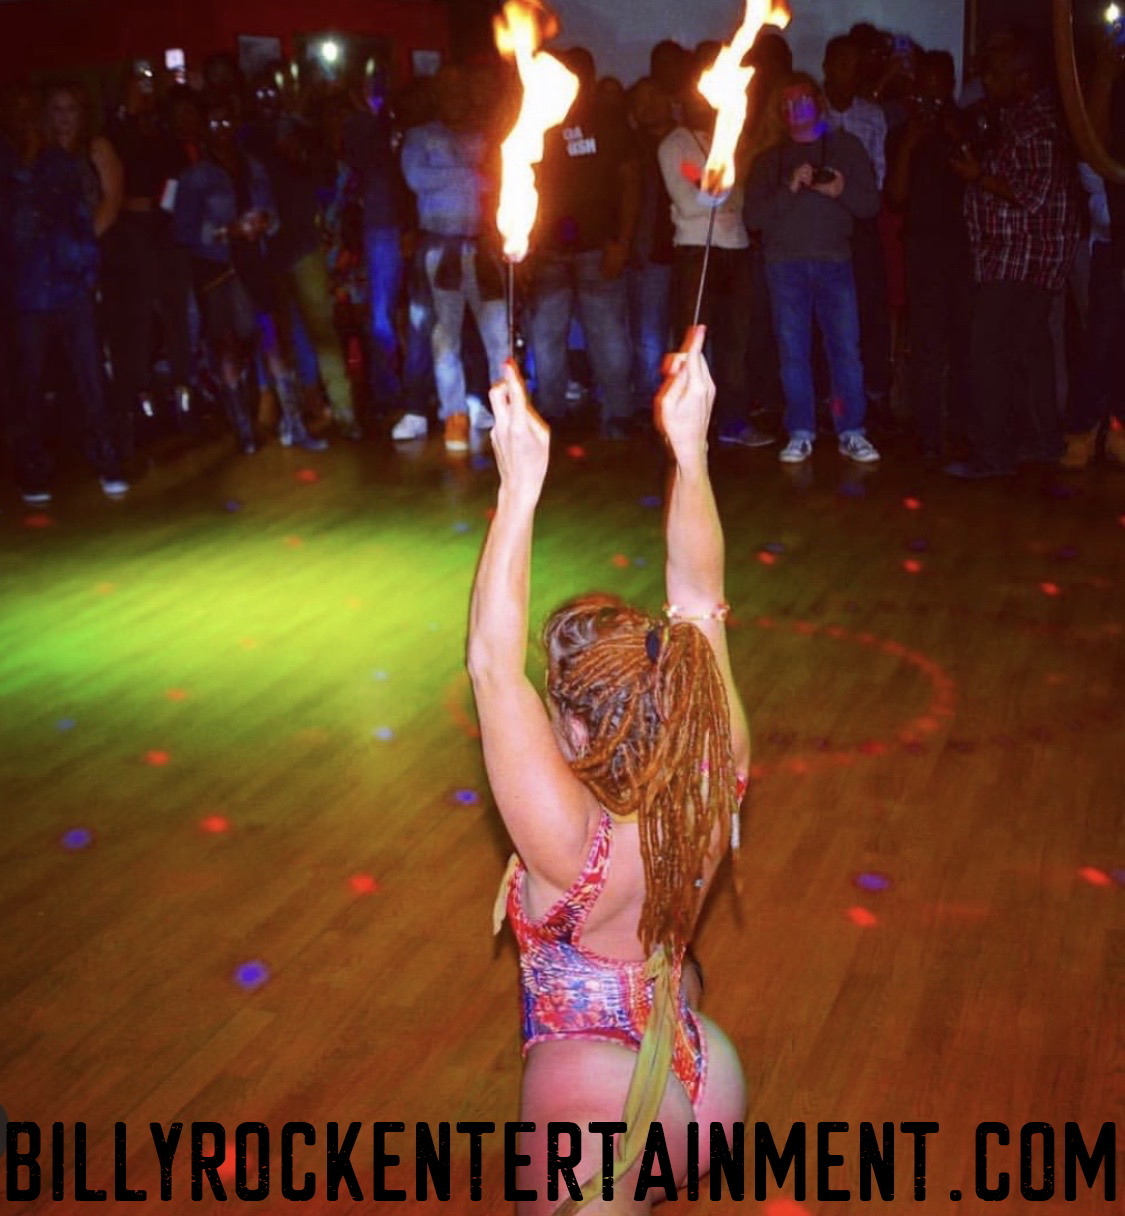 Striptease Fire Shows are Topnotch Entertainment, and Venus Puts on the Best Fire Shows in all of Co